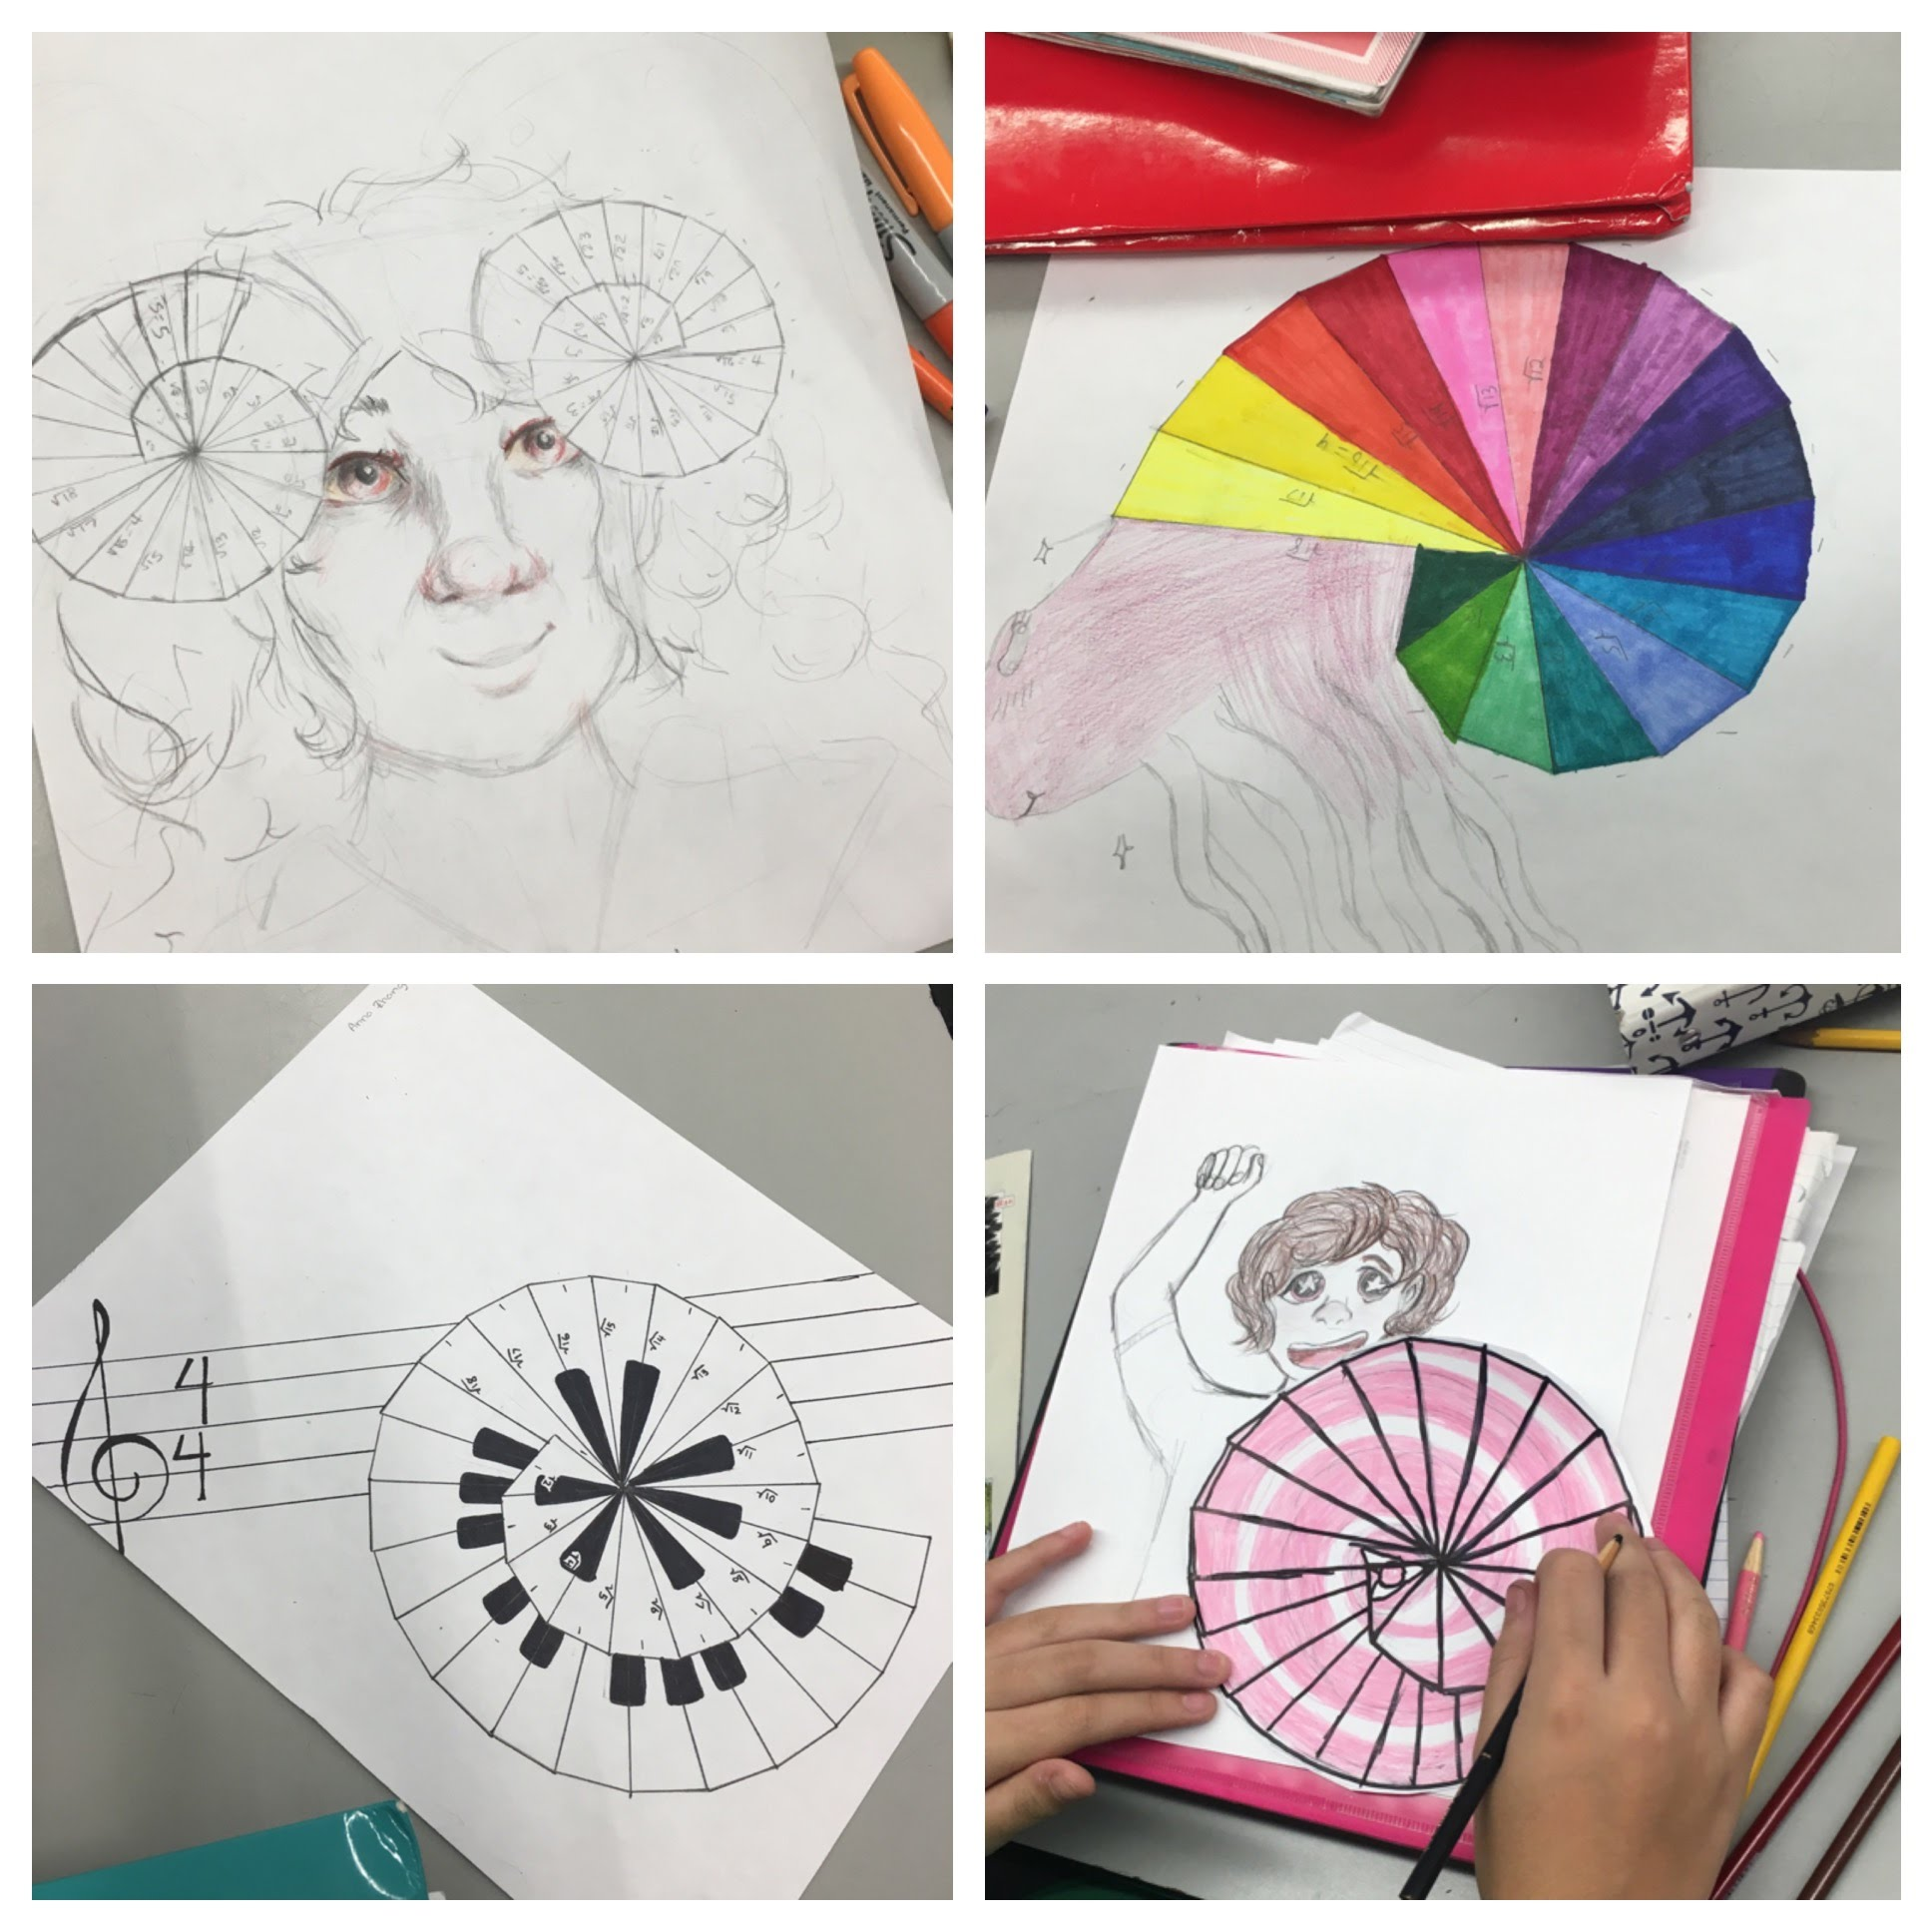 wheel of theodorus art project ideas. students were given a task where they had to draw the wheel of theodorus, which ultimately creates triangular shell and be creative with their theodorus art project ideas